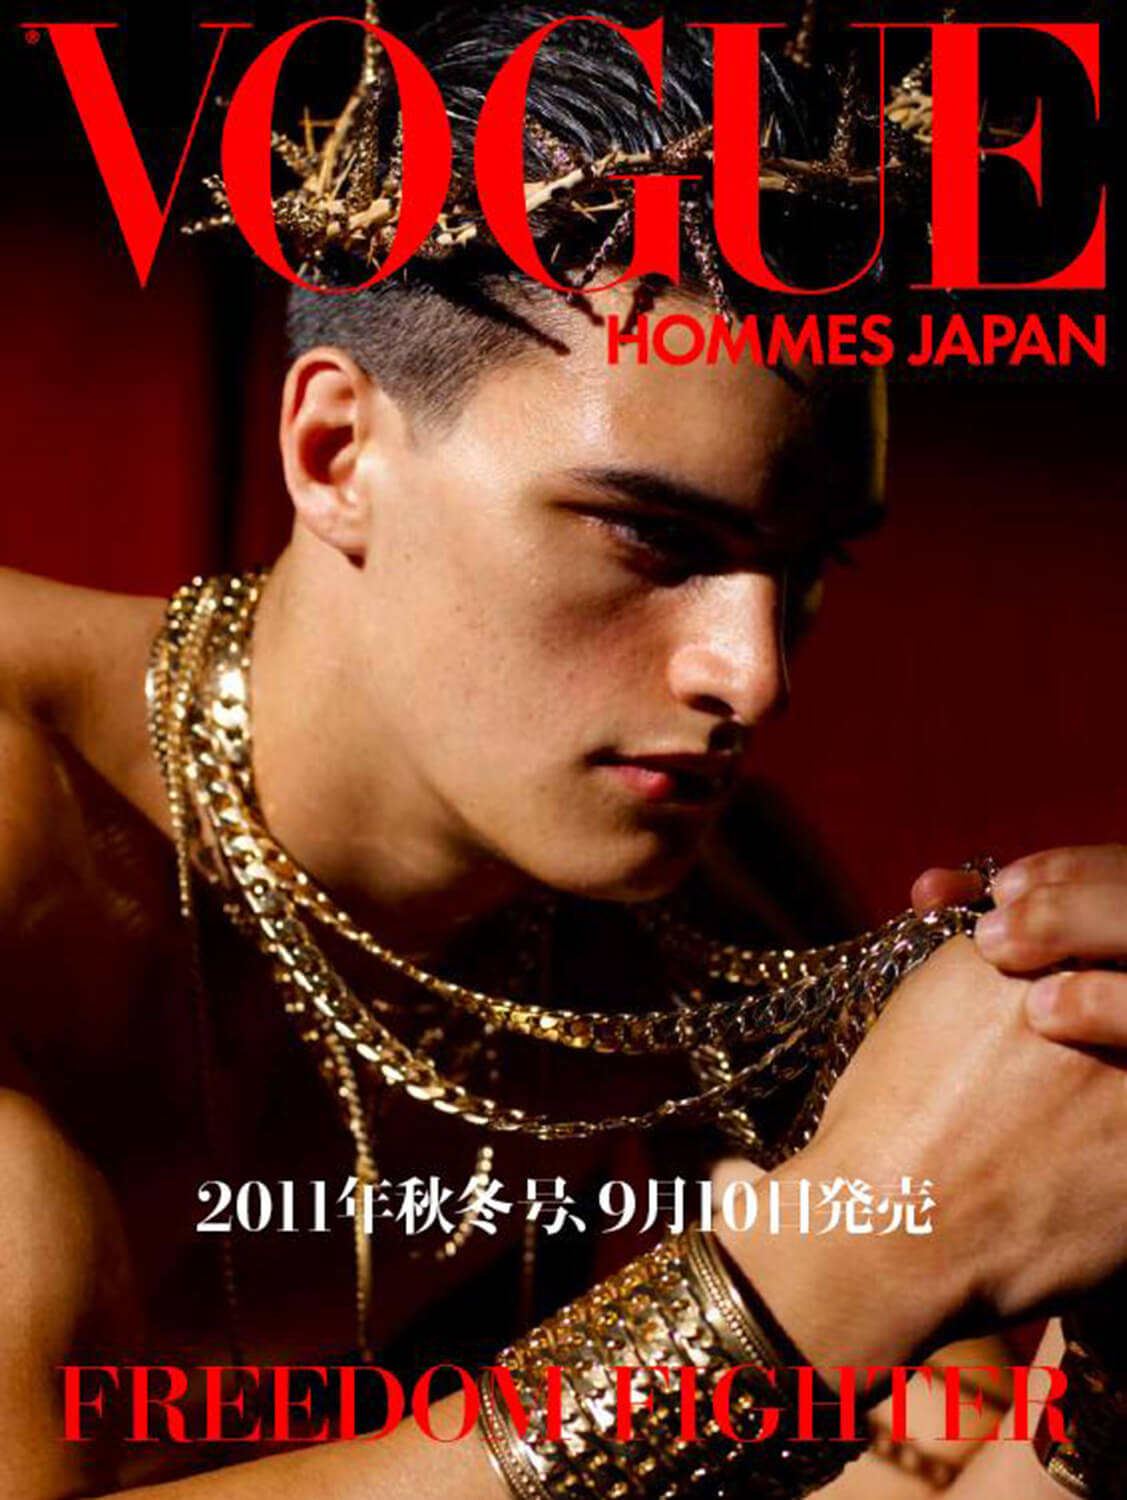 Vogue Hommes Japan Cover for Vogue Hommes Japan (Fall/Winter 2010)